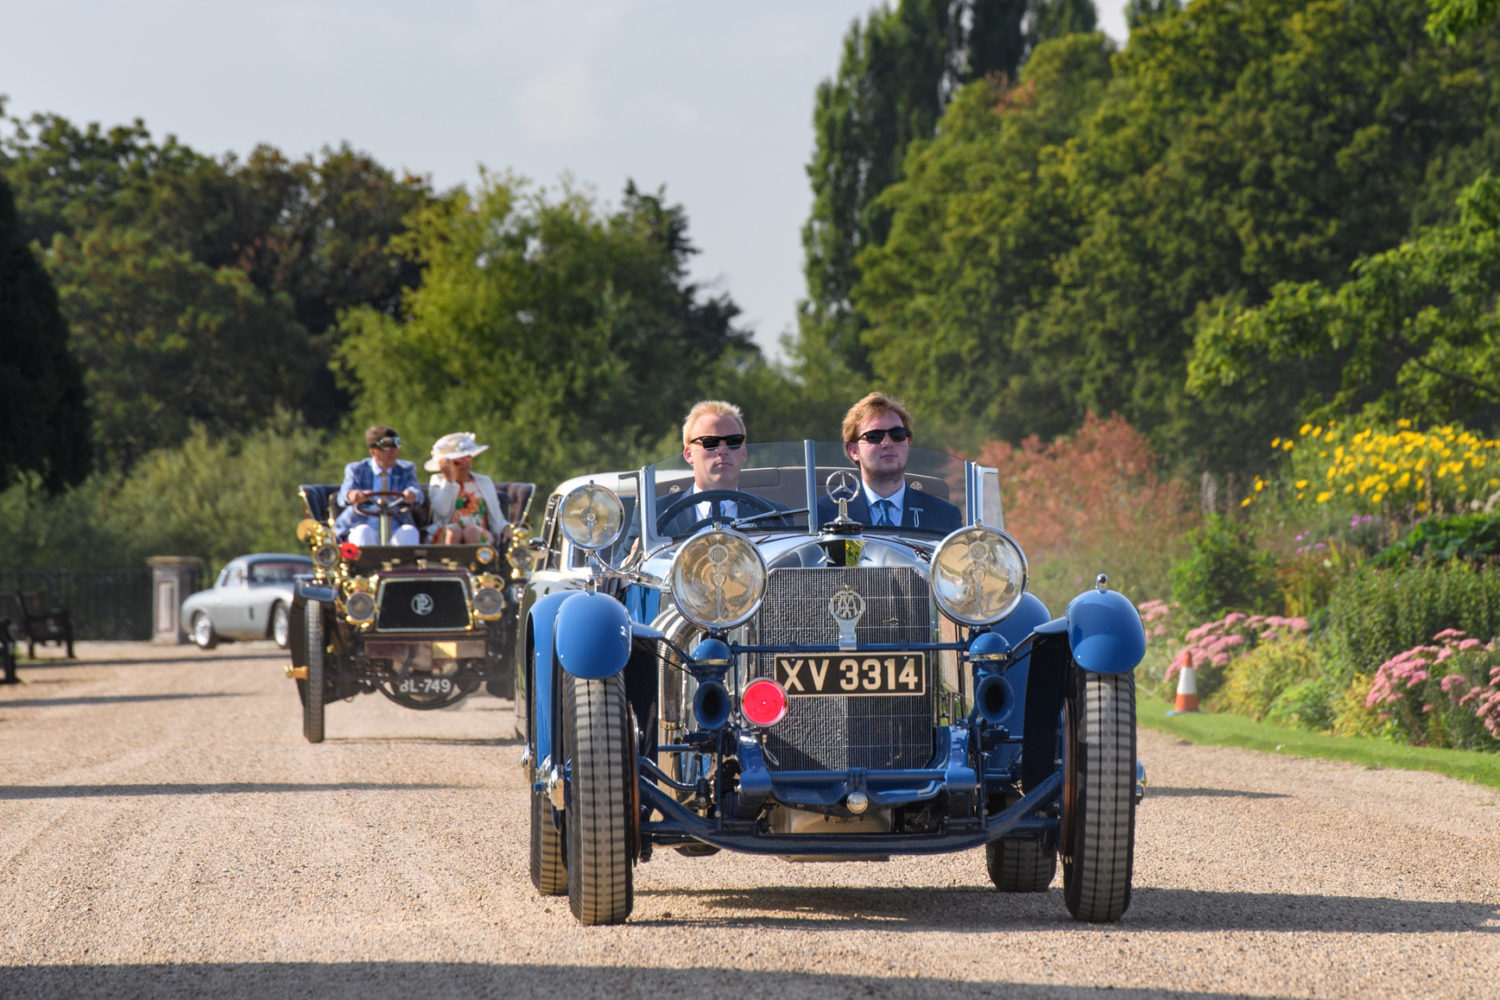 CONCOURS OF ELEGANCE WELCOMES THOUSANDS OF VISITORS ON STUNNING FIRST DAY